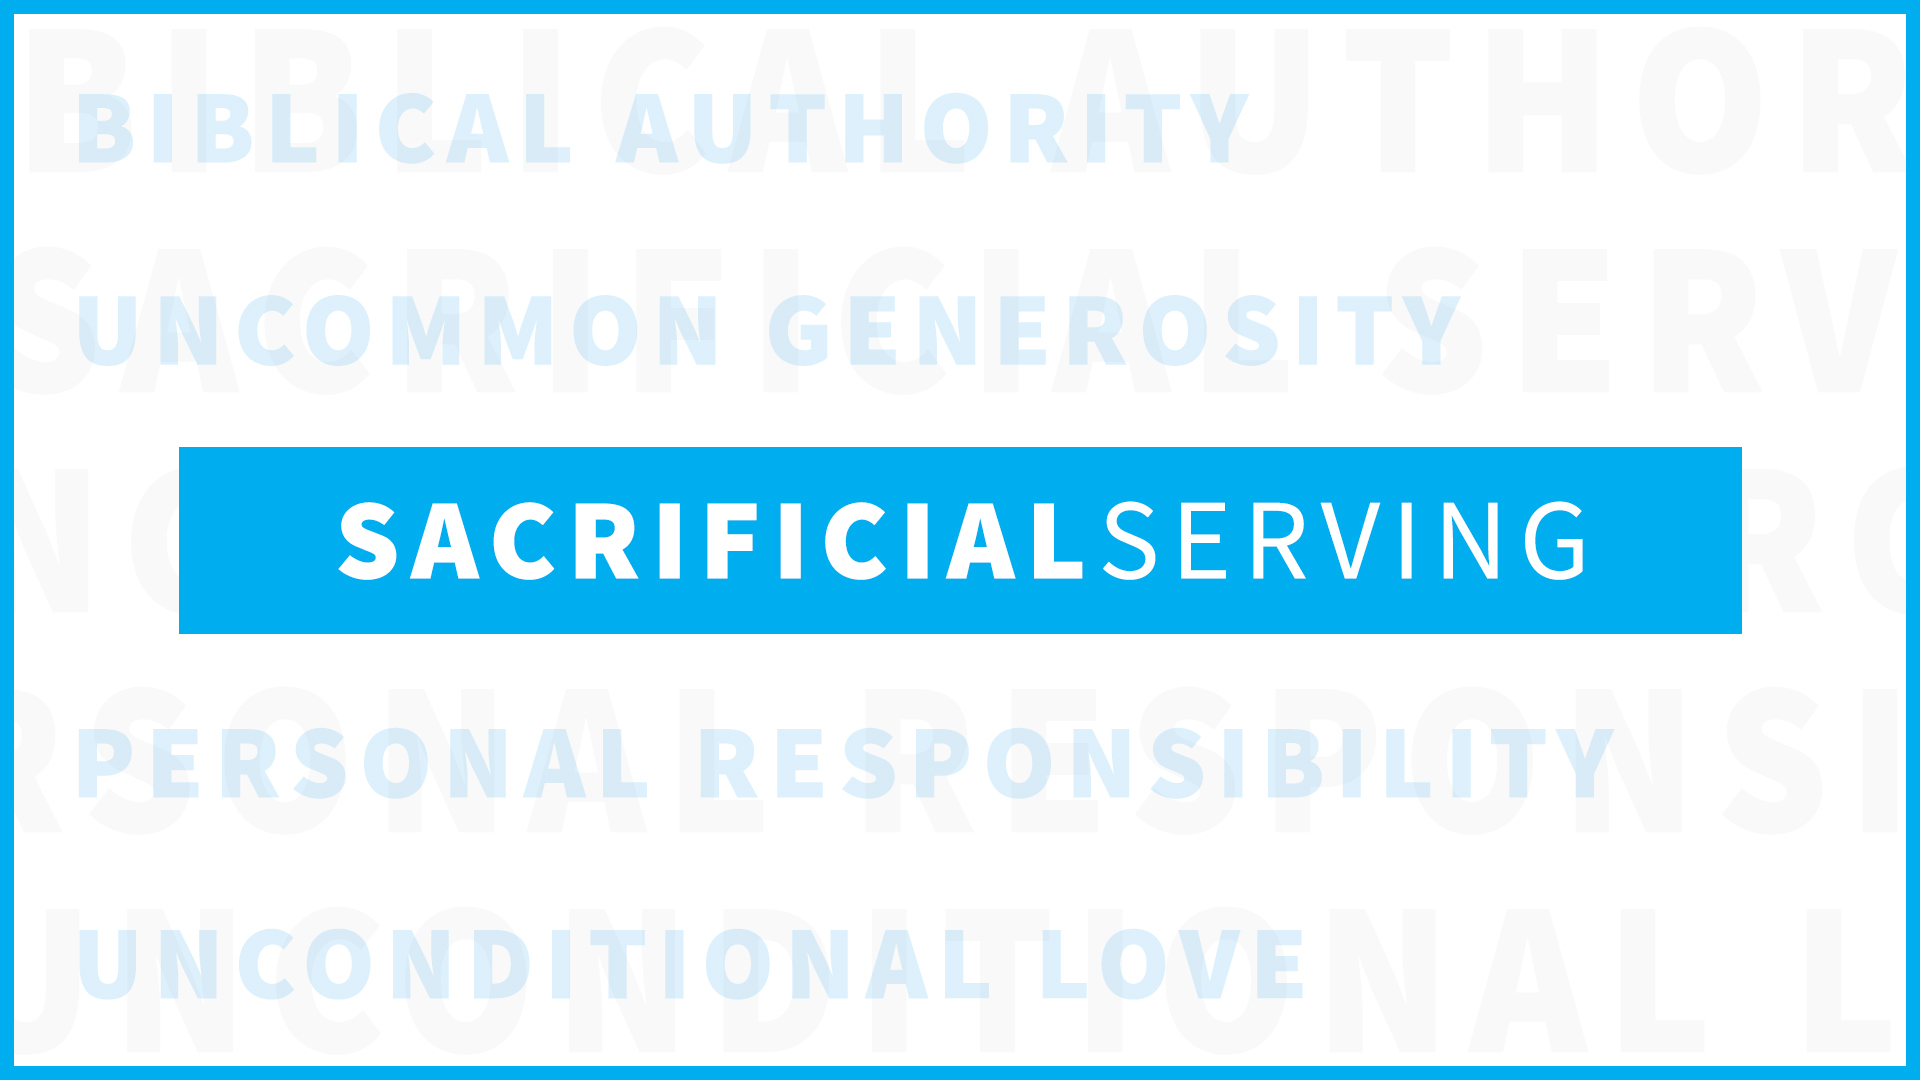 Sacrifical Serving_1920x1080_Alt.jpg